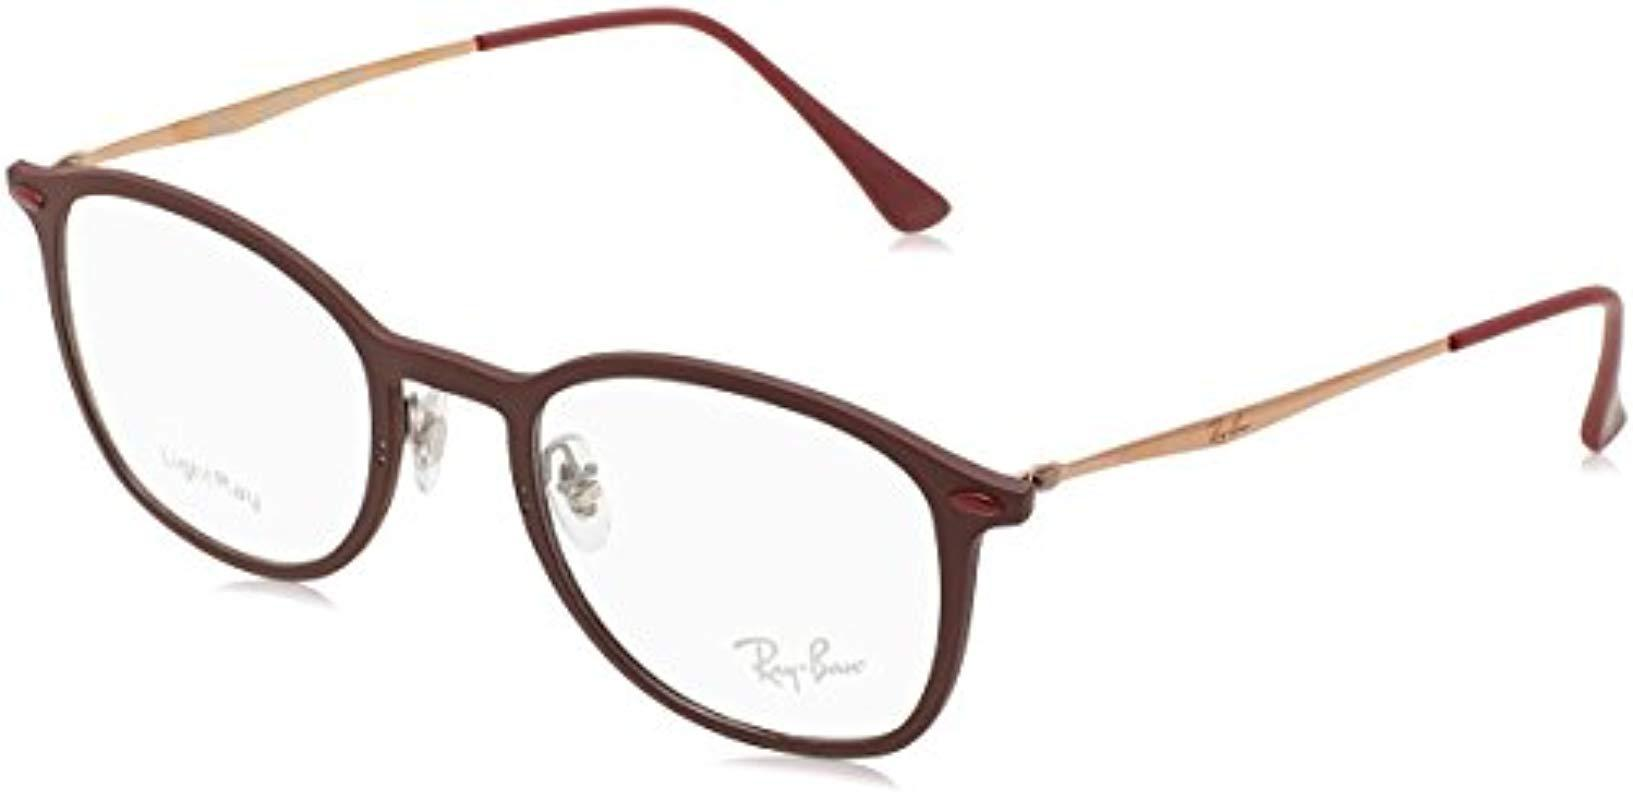 Ray-Ban 0rx 7051 5689 49 Optical Frames, Red (matte Bordo) in Red - Lyst 95bac408478c